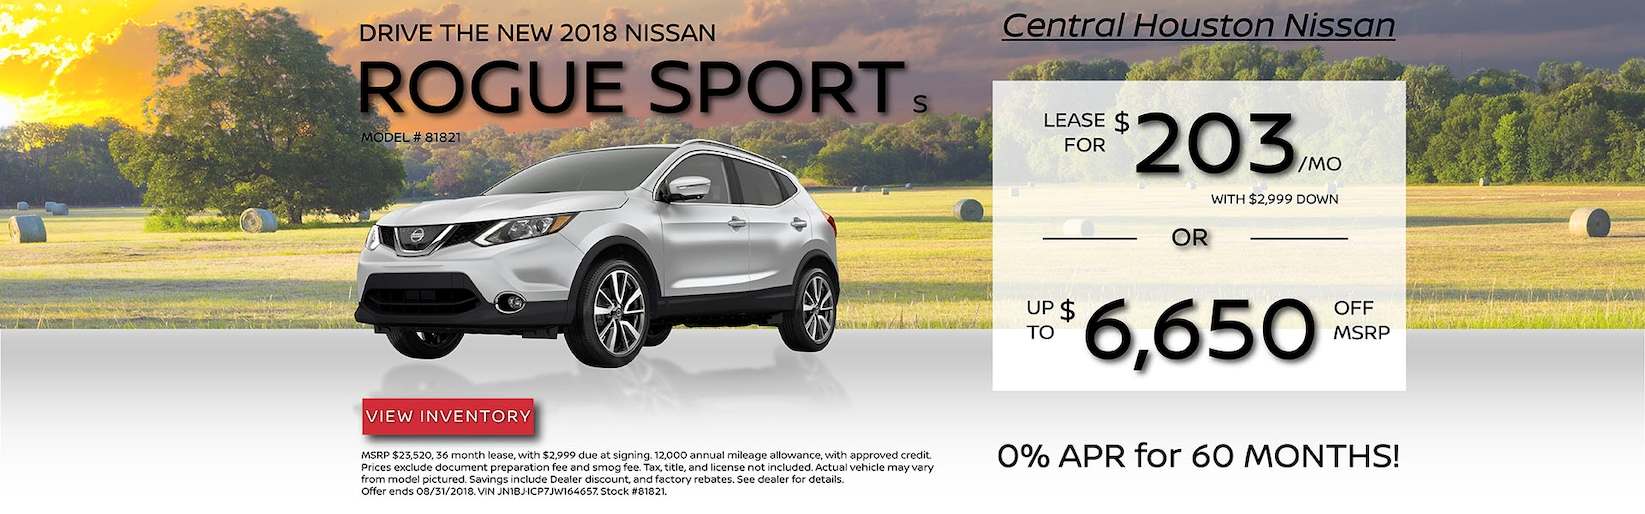 Central Houston Nissan | Nissan Dealership in Houston, TX